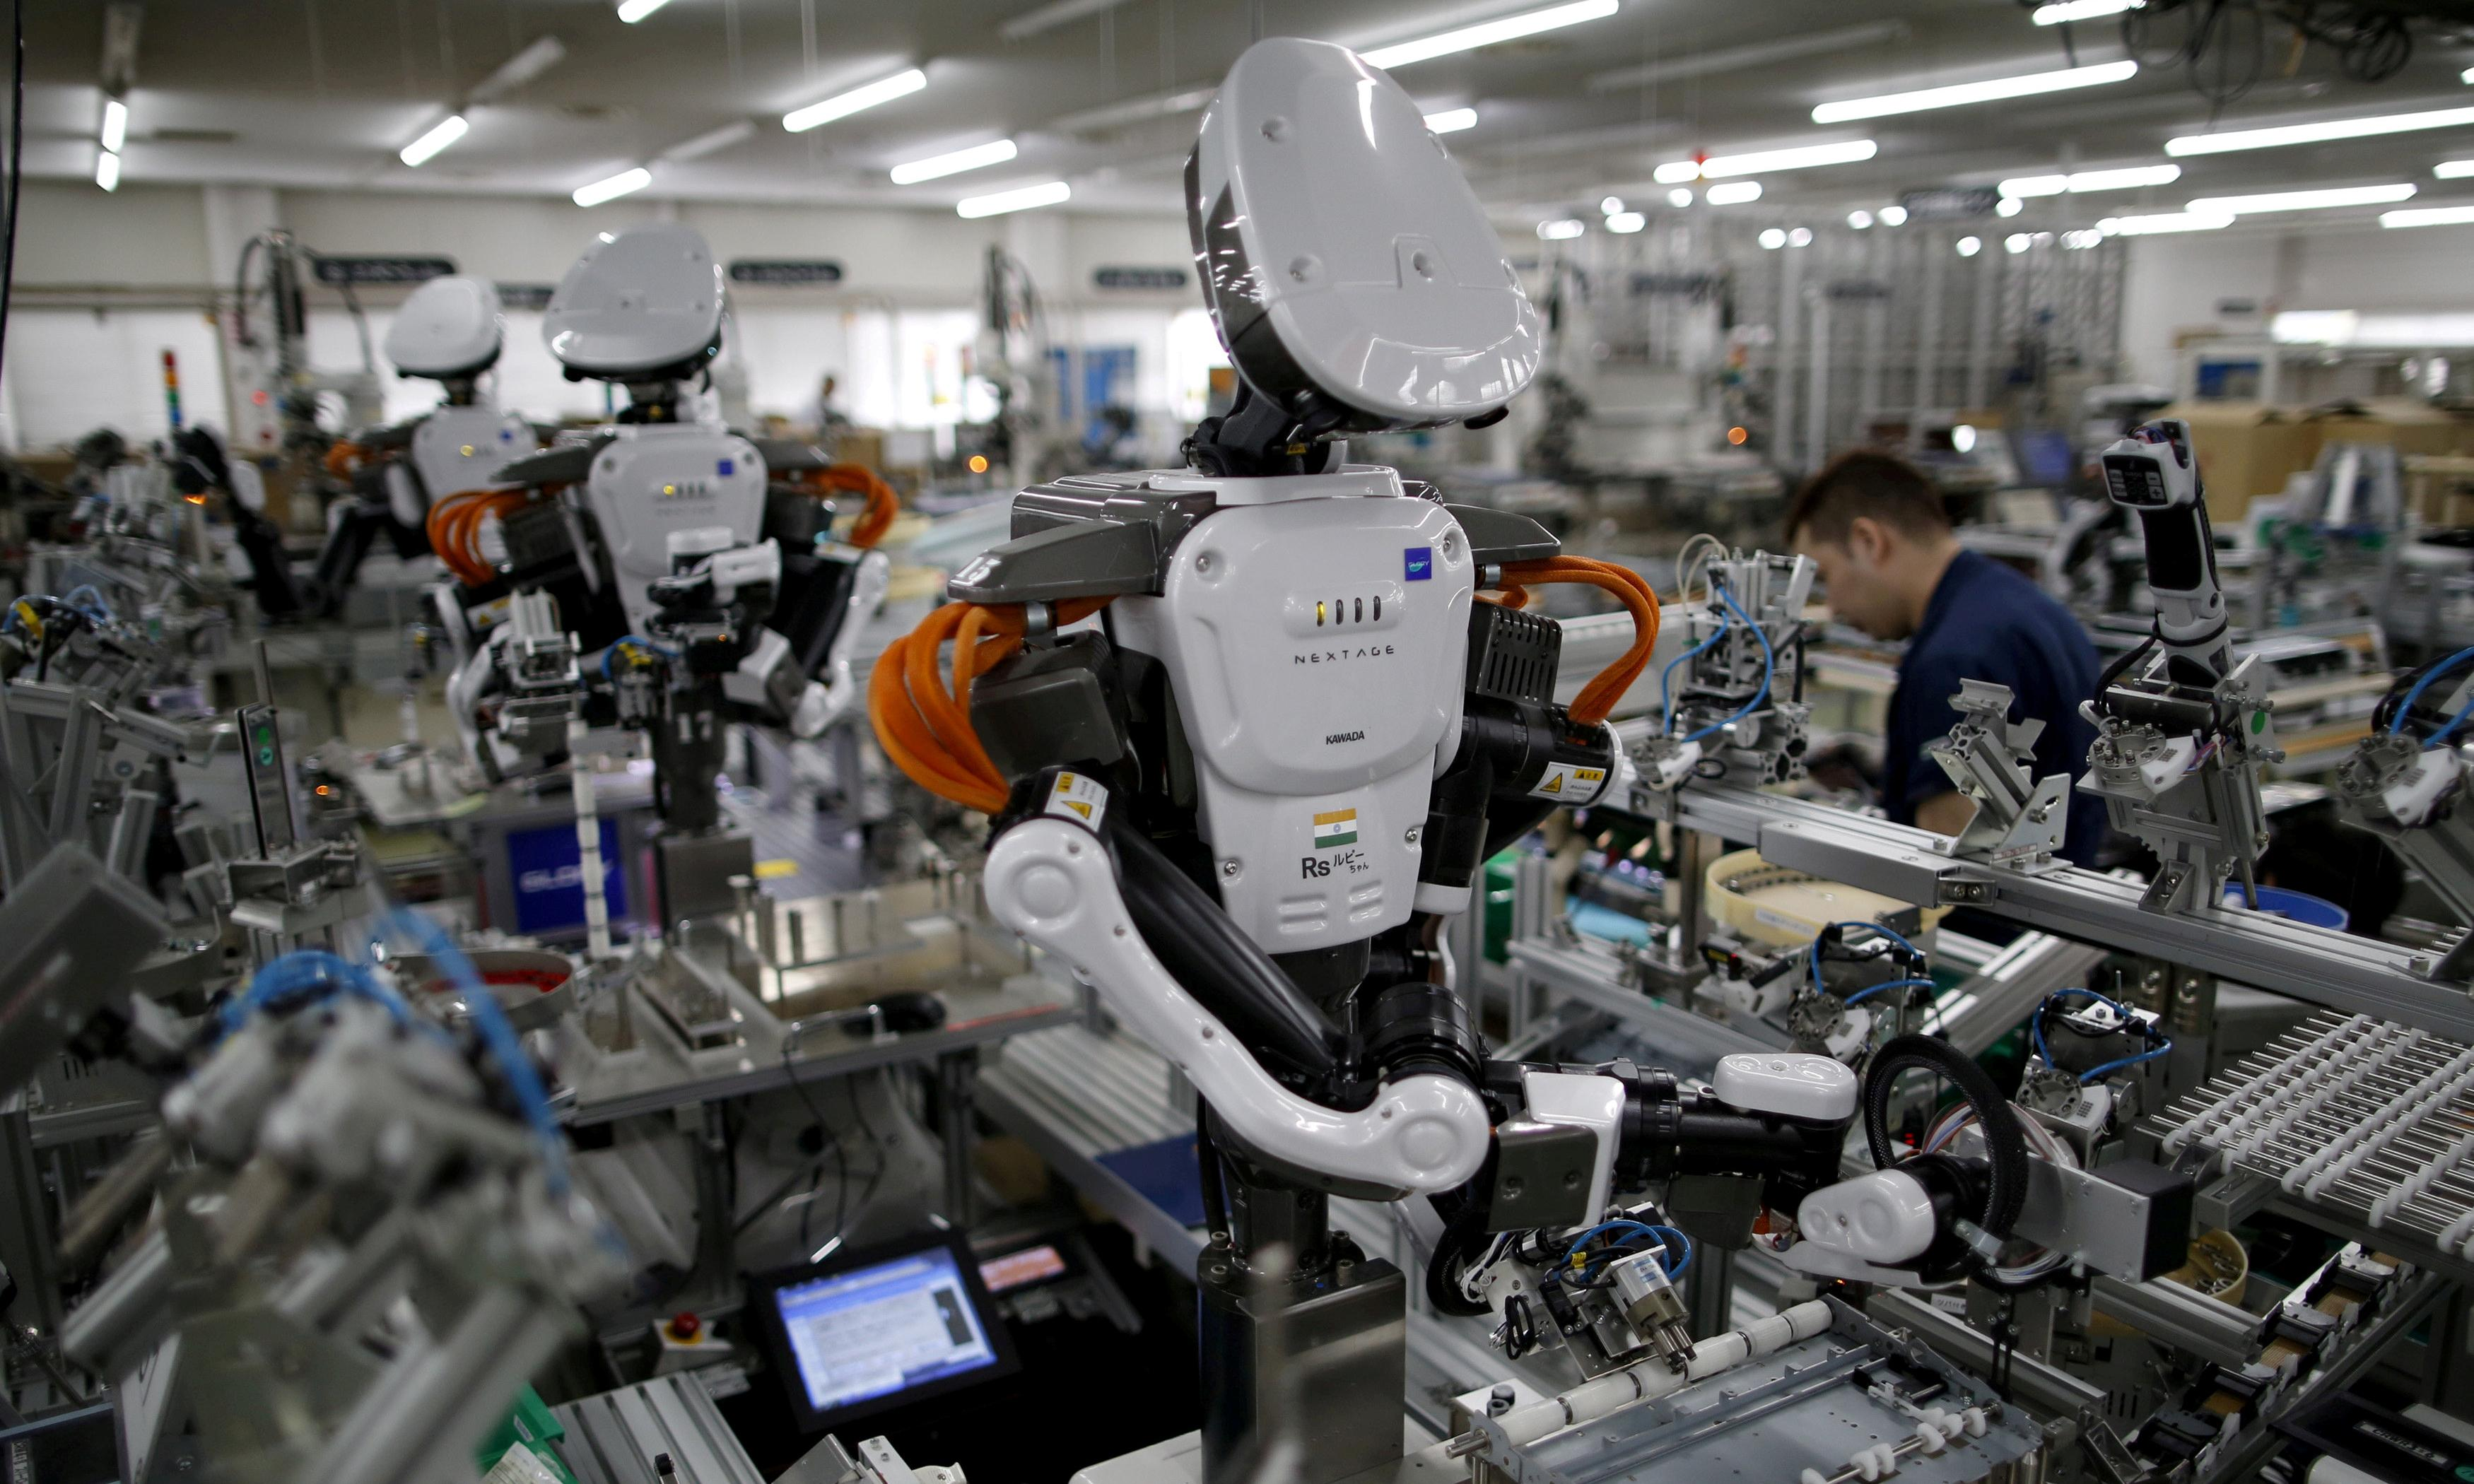 ILO urges world leaders to guarantee workers' rights as robots cut jobs